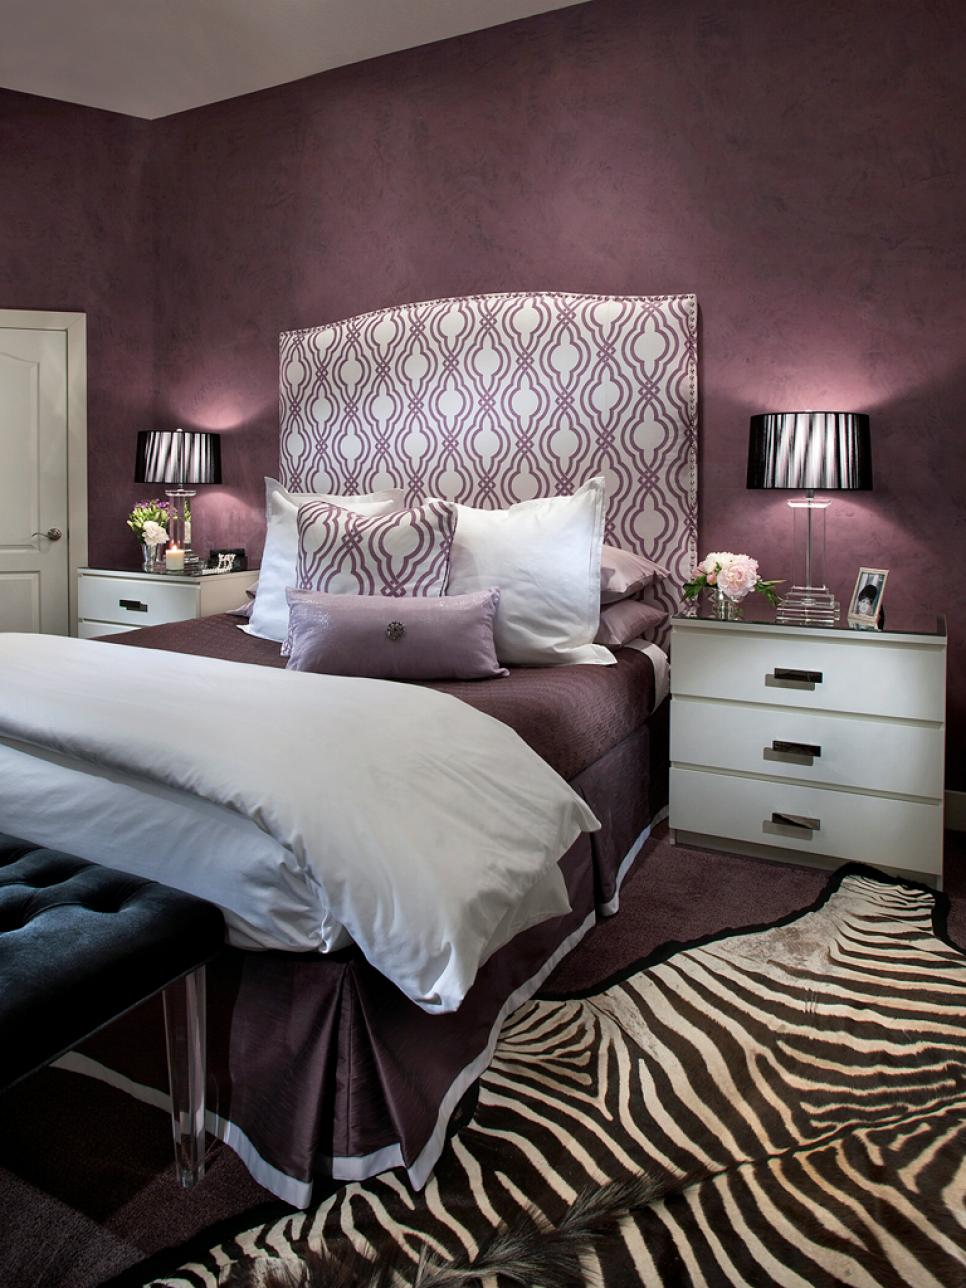 id es de d co le violet dans votre chambre bricobistro. Black Bedroom Furniture Sets. Home Design Ideas